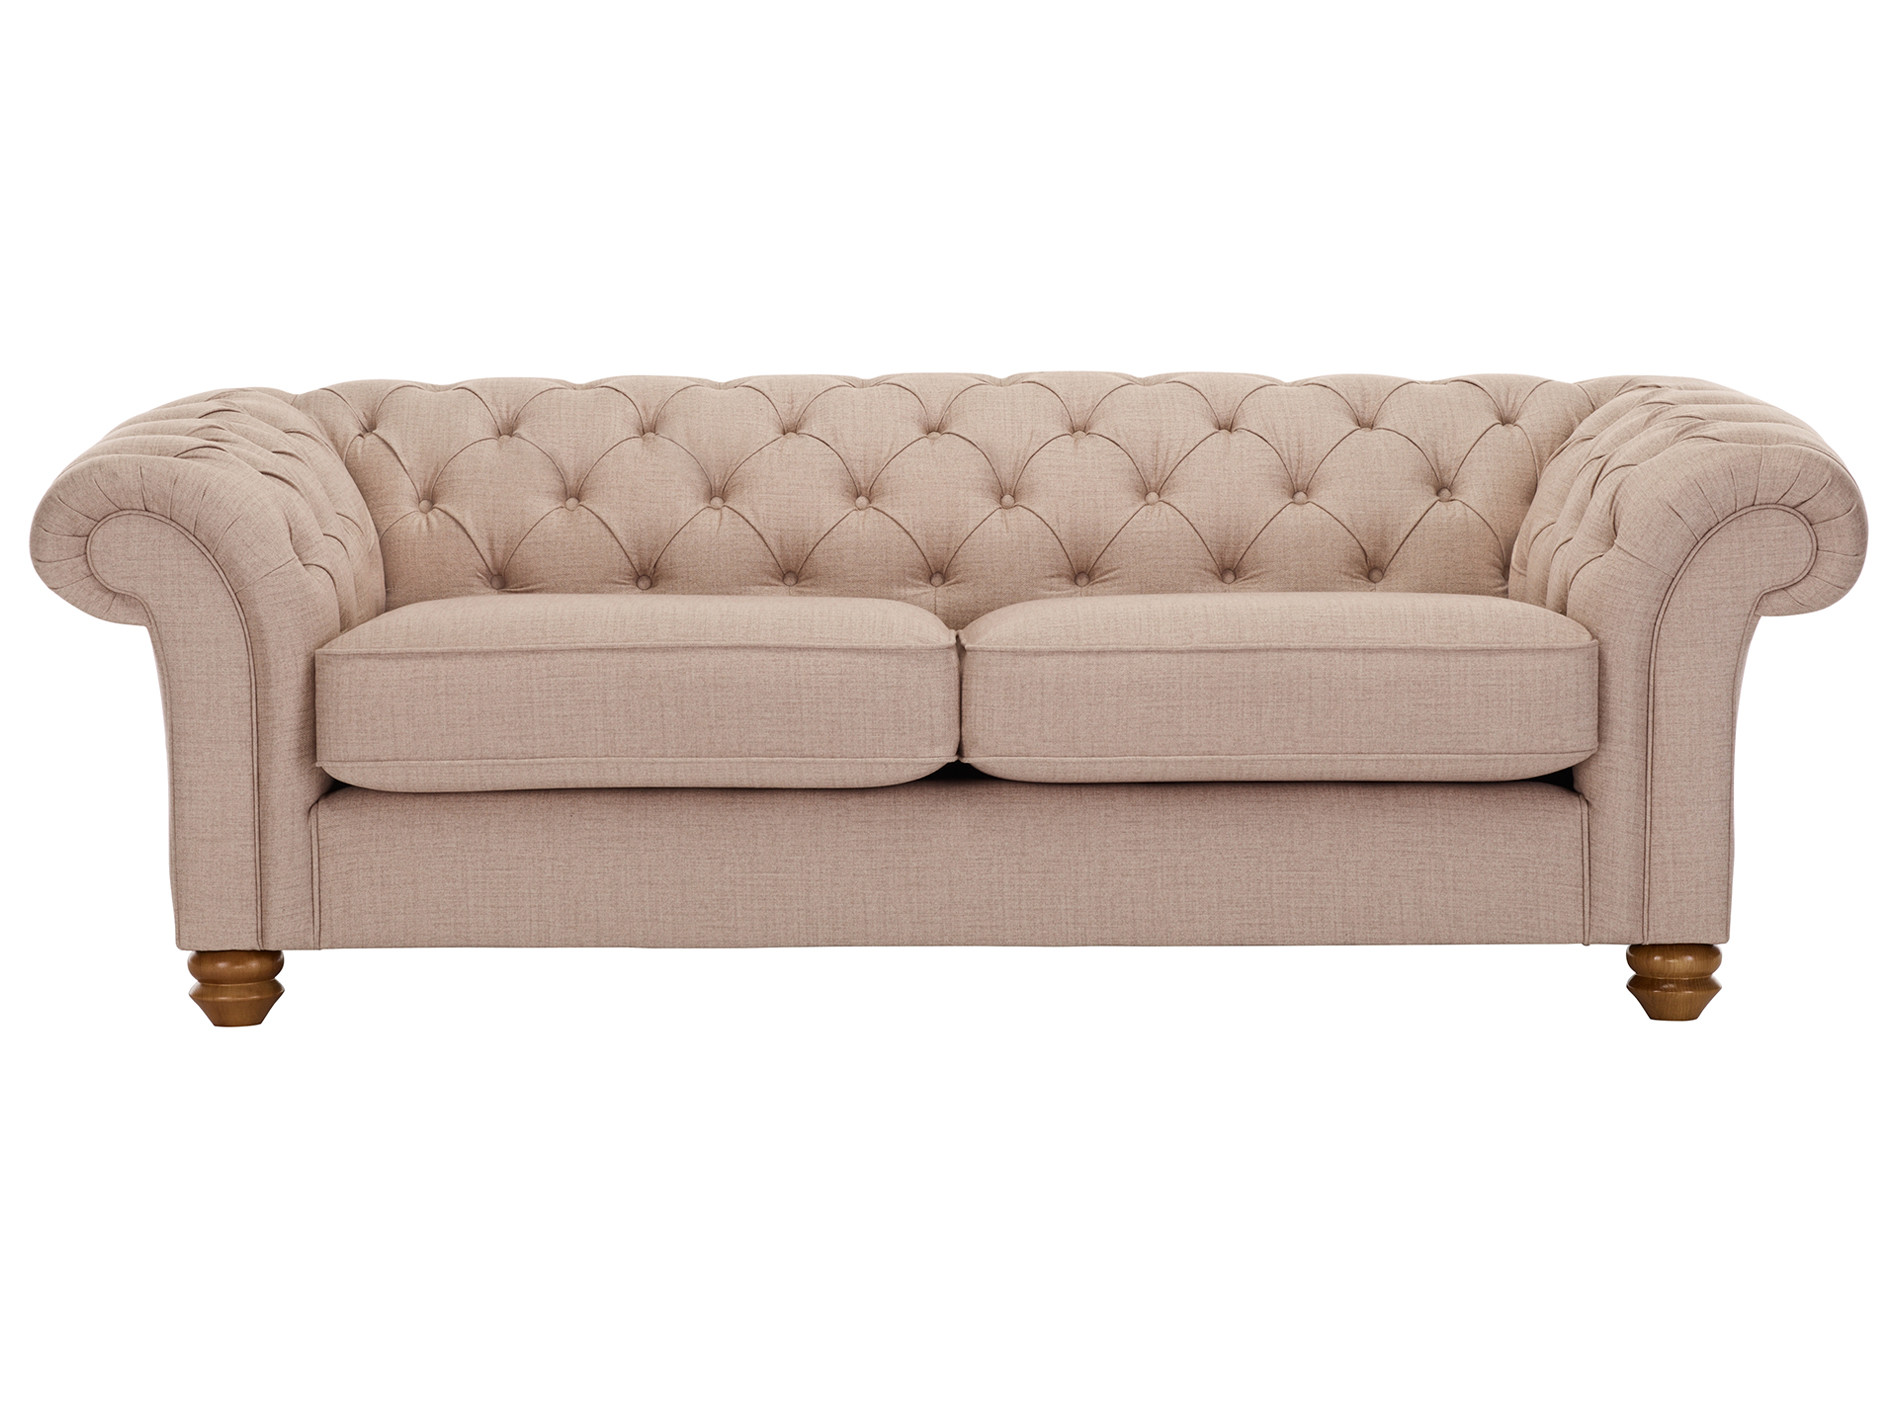 Chesterfield 3 Seater Sofa in Orchid Beige